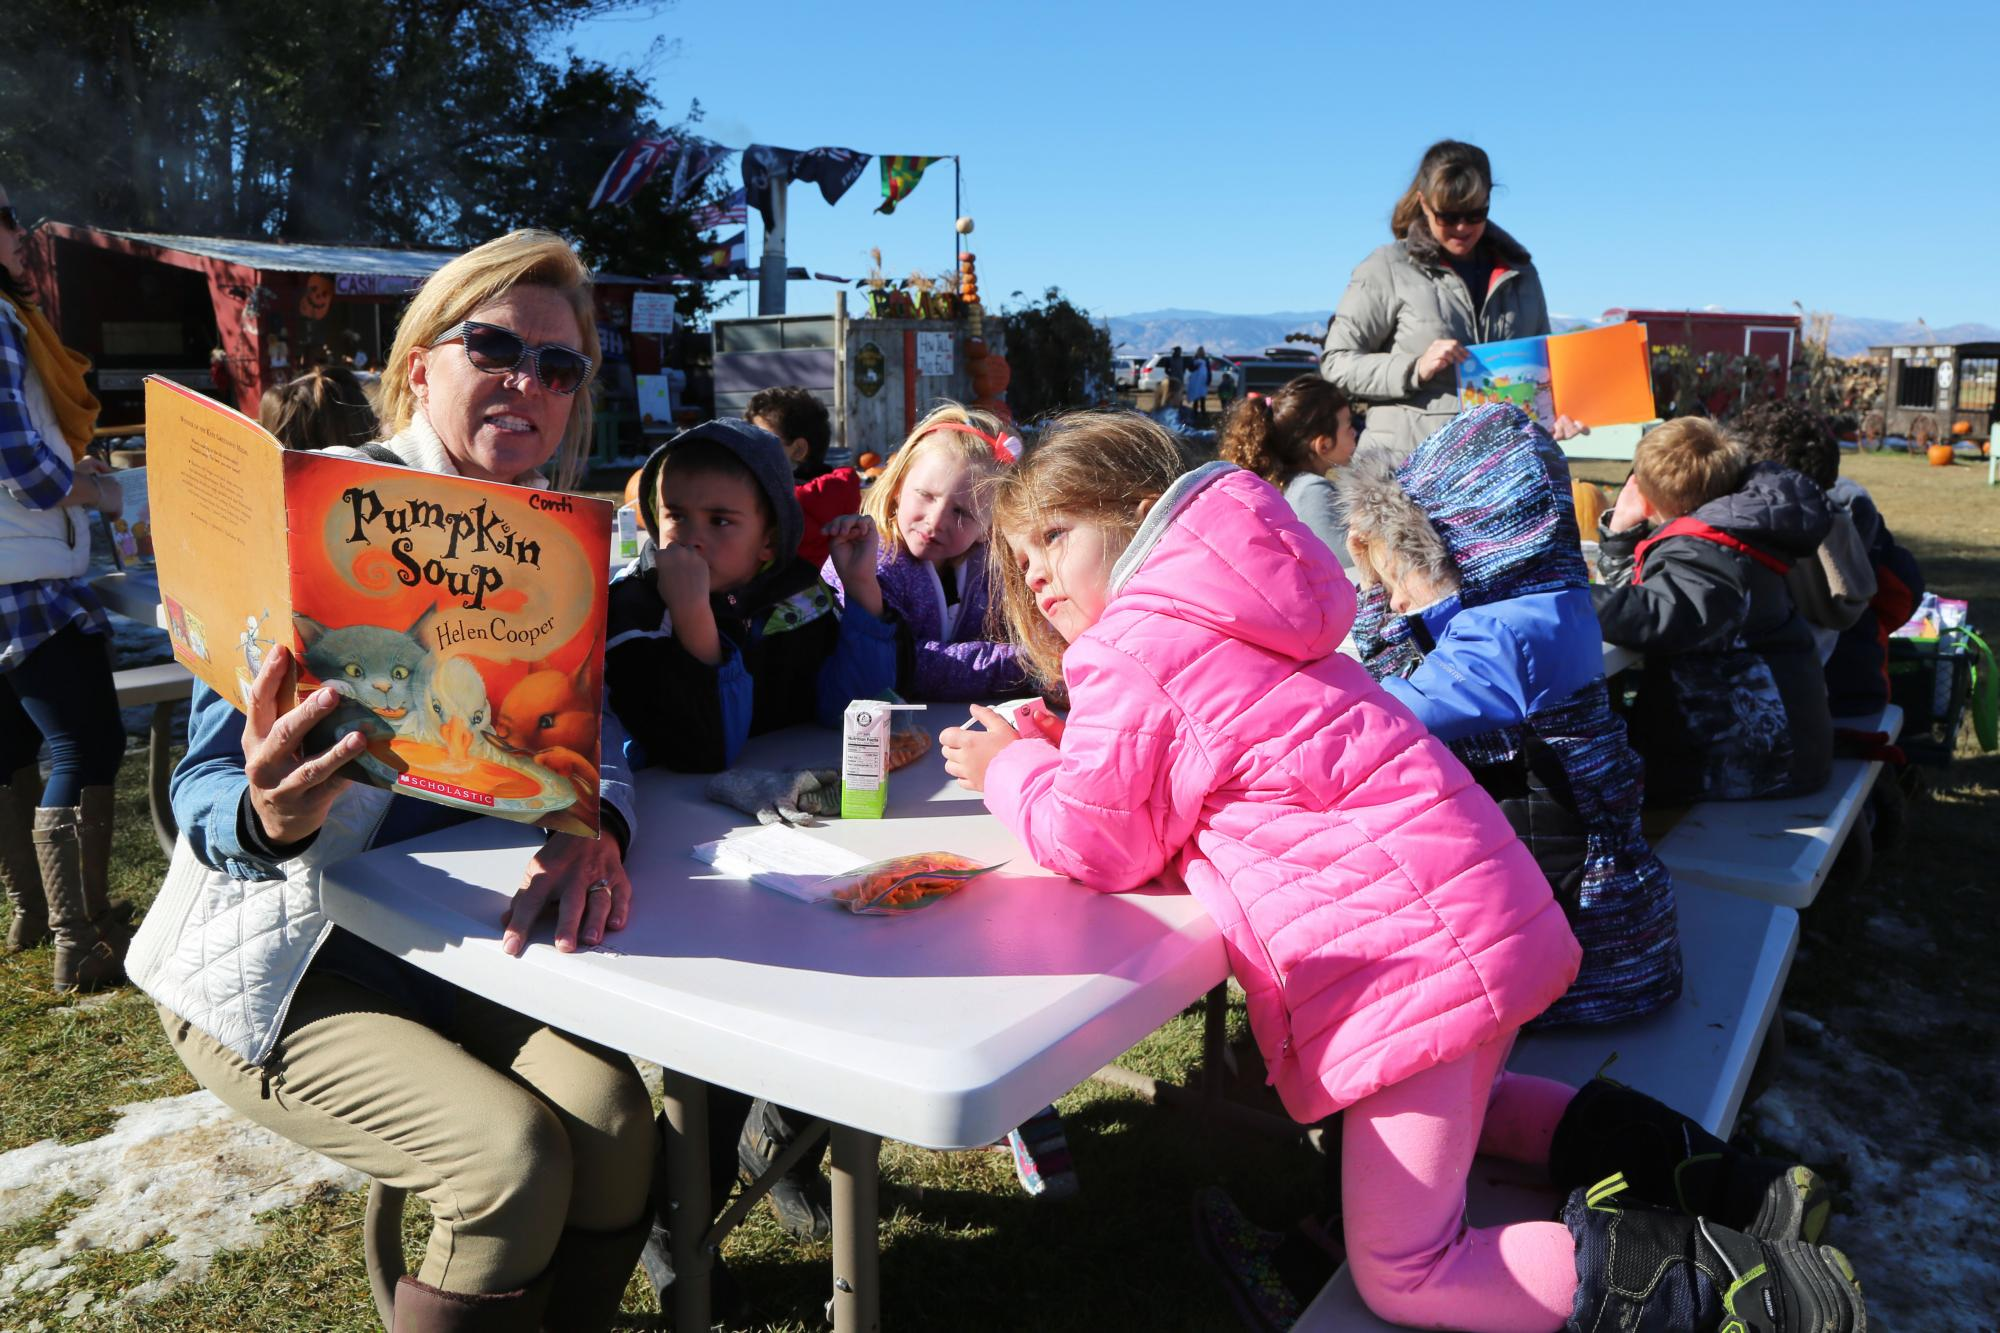 A teacher reads to kindergateners outside during a field trip to a pumpkin patch.